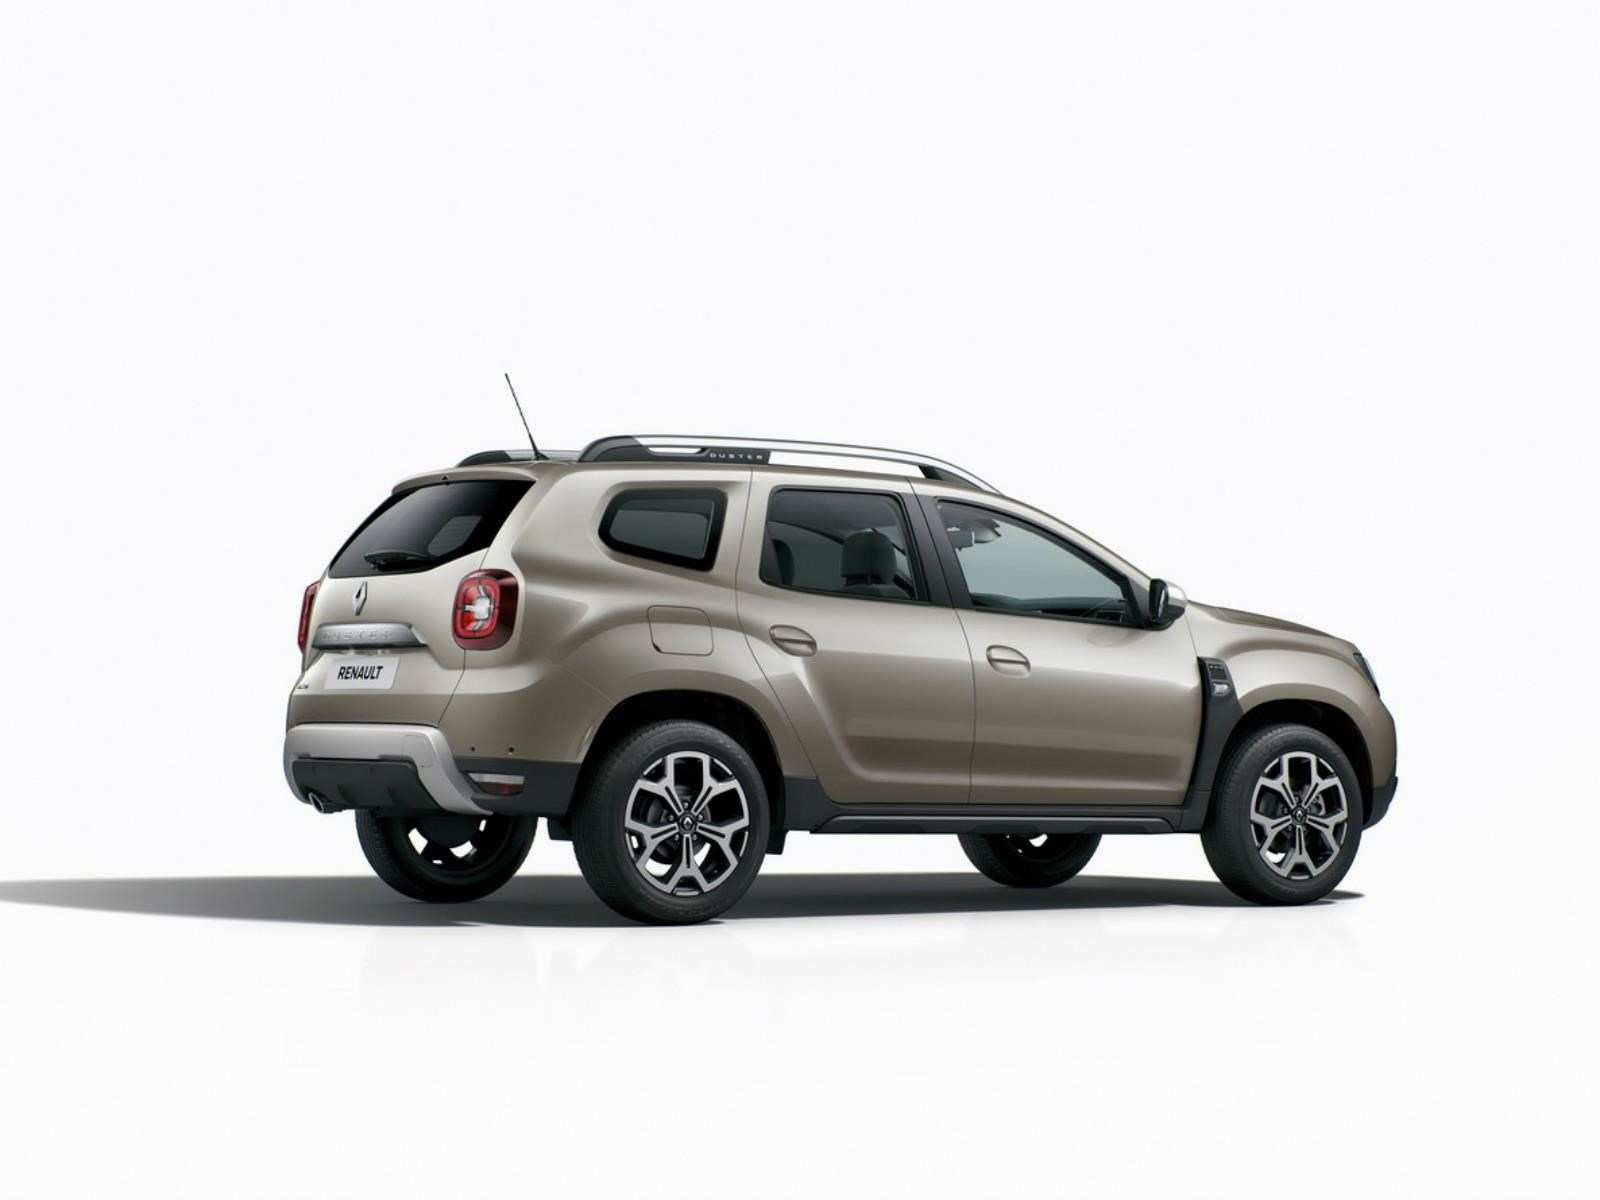 46 Great Renault Duster 2019 Colombia Exterior and Interior by Renault Duster 2019 Colombia